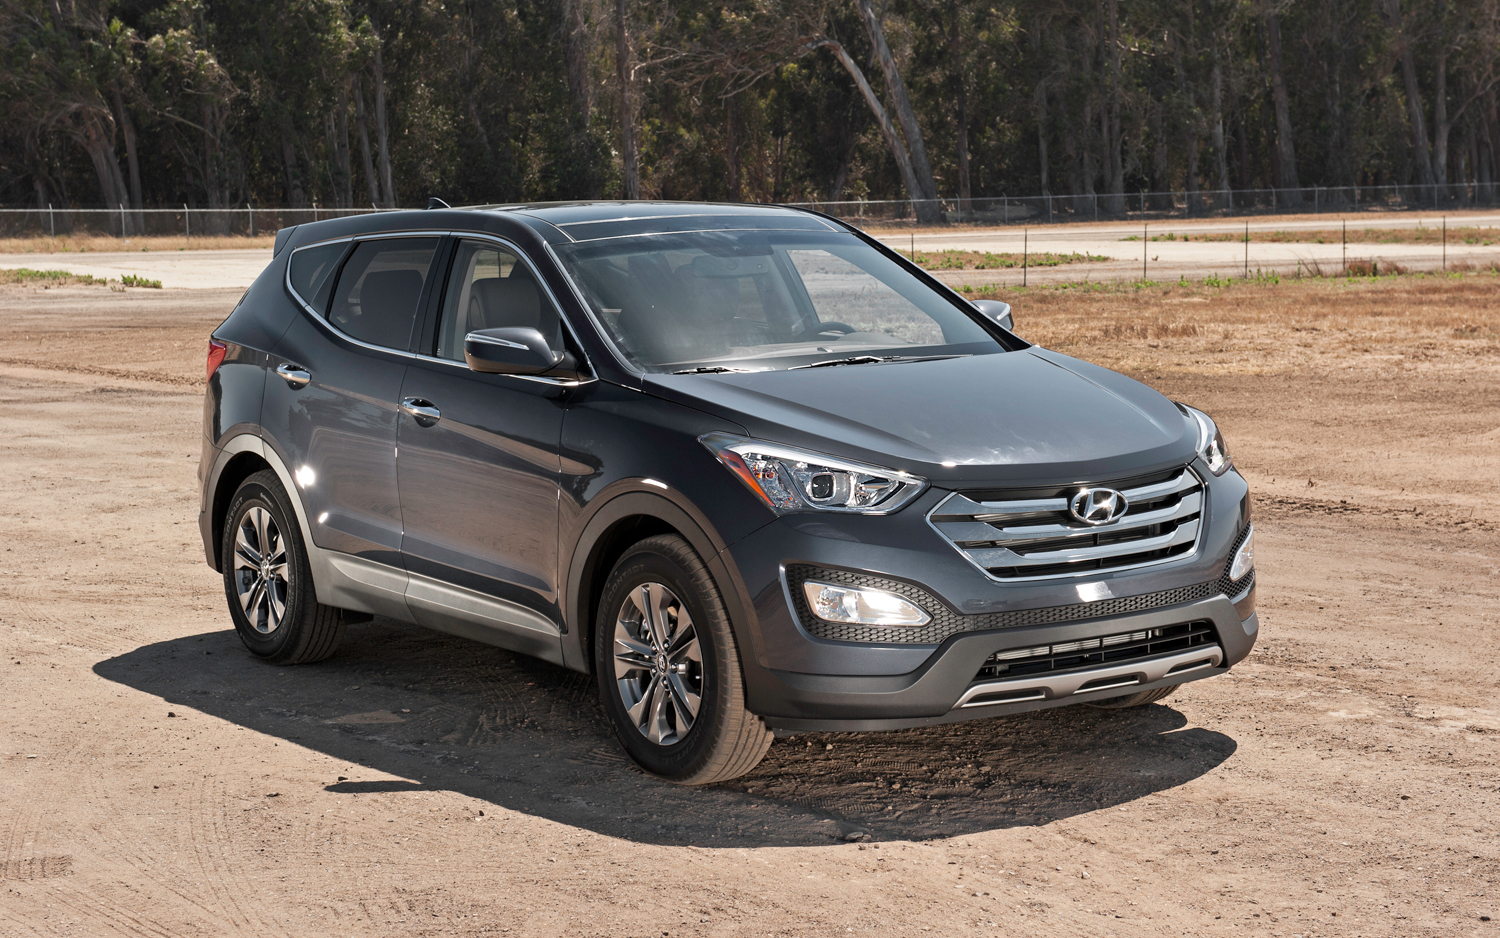 Hyundai Santa Fe 2.0 2013 photo - 10